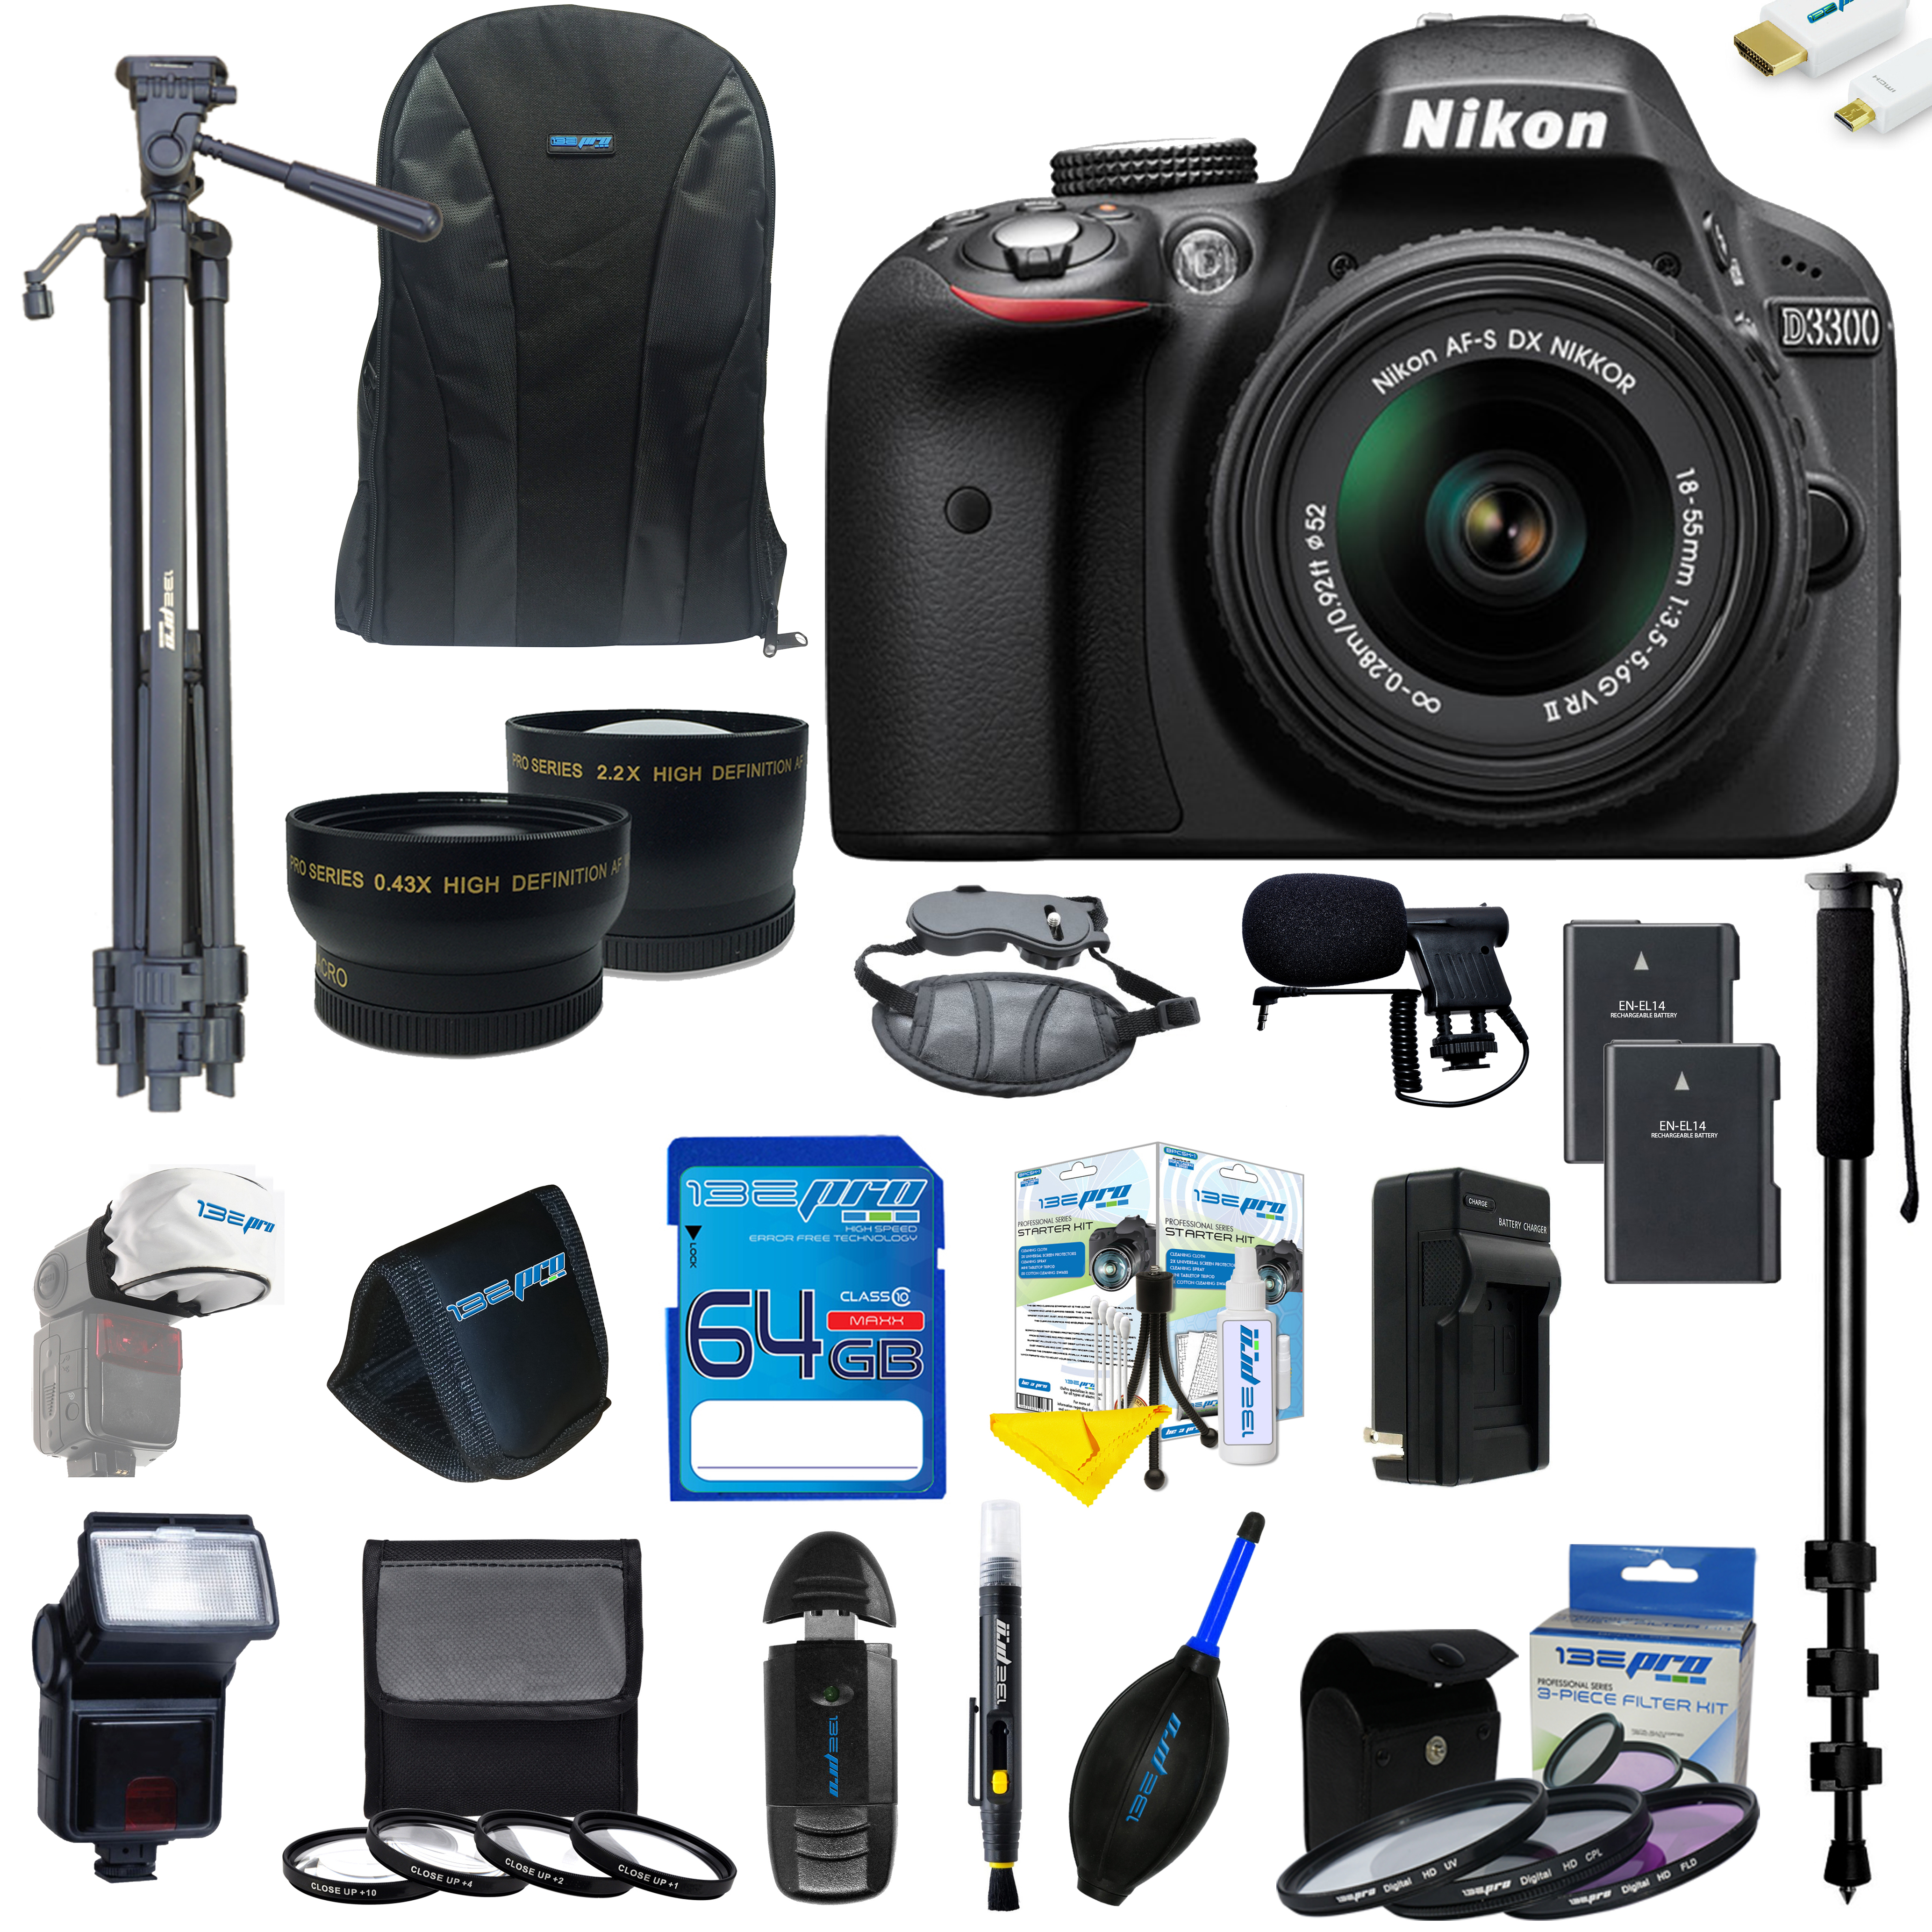 Nikon D3300 DSLR Camera with 18-55mm Lens + Pixi Ultimate Kit